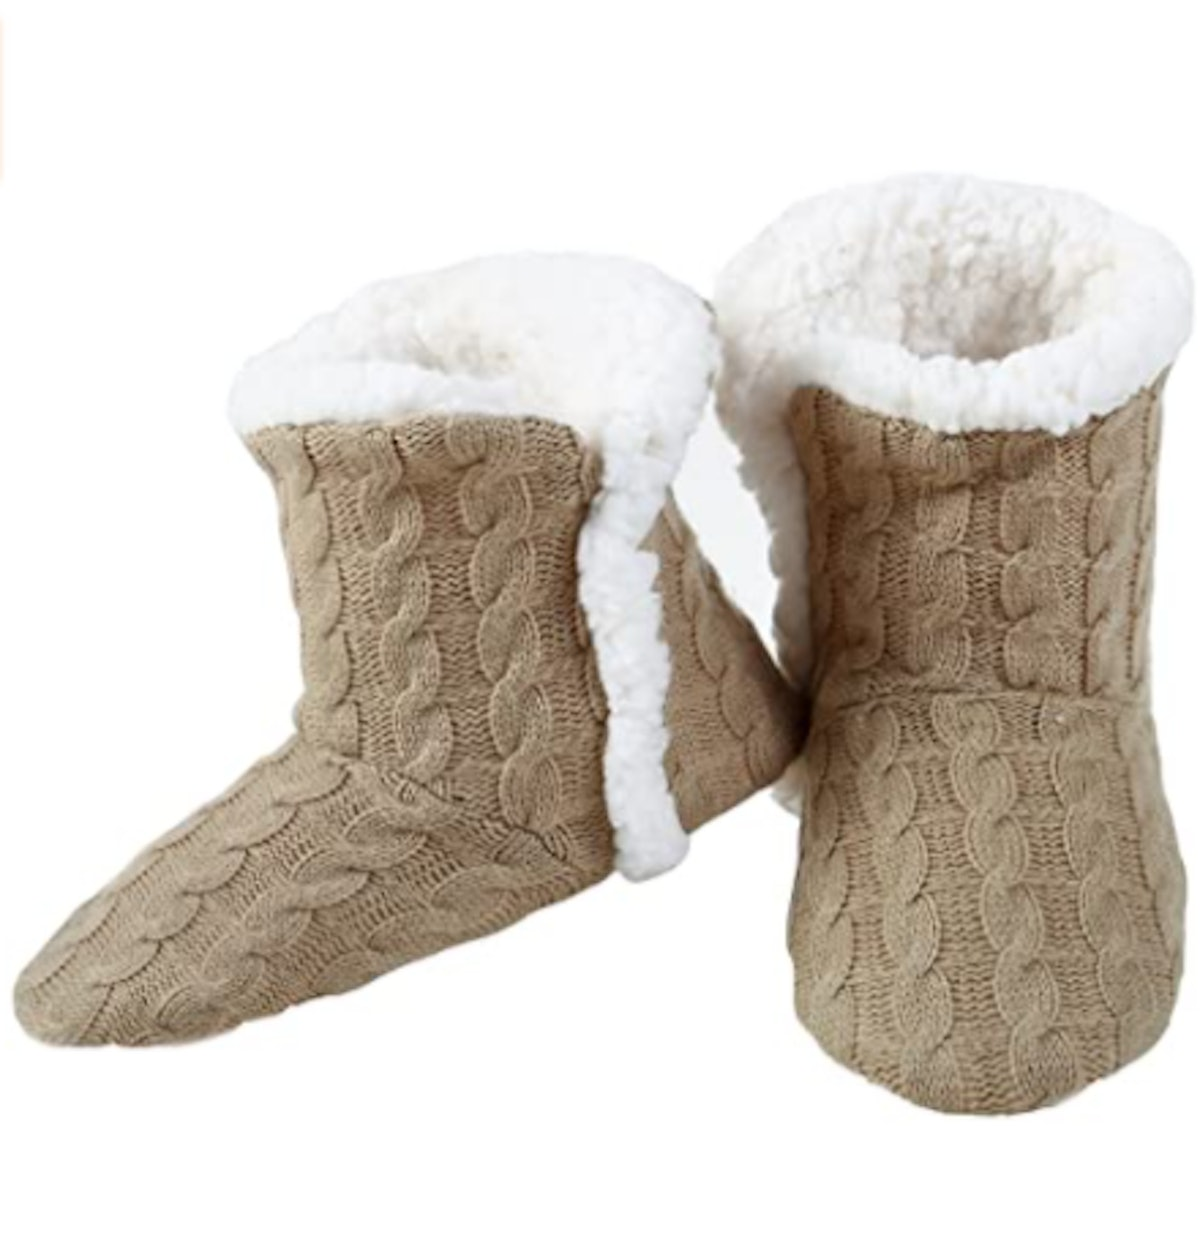 YELETE Cable Knit Slippers